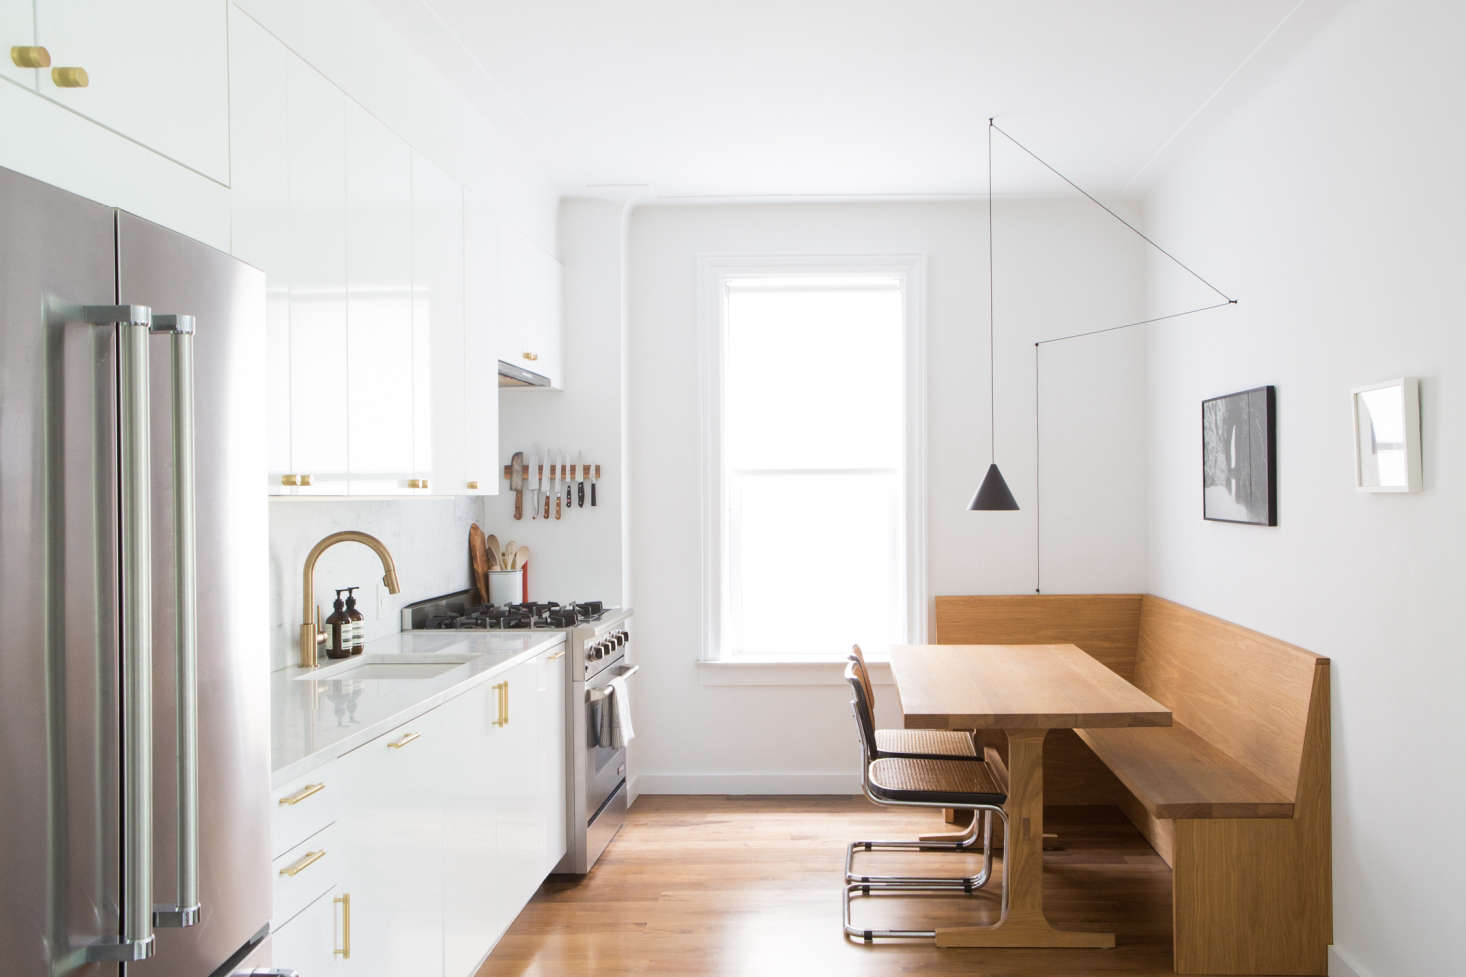 A Brooklyn kitchen by Space Exploration has basic Ikea cabinetry with glossy white cabinet fronts and marble countertops. For more, seeKitchen of the Week: An Ikea Kitchen with an Elegant Upper Cabinet Solution.